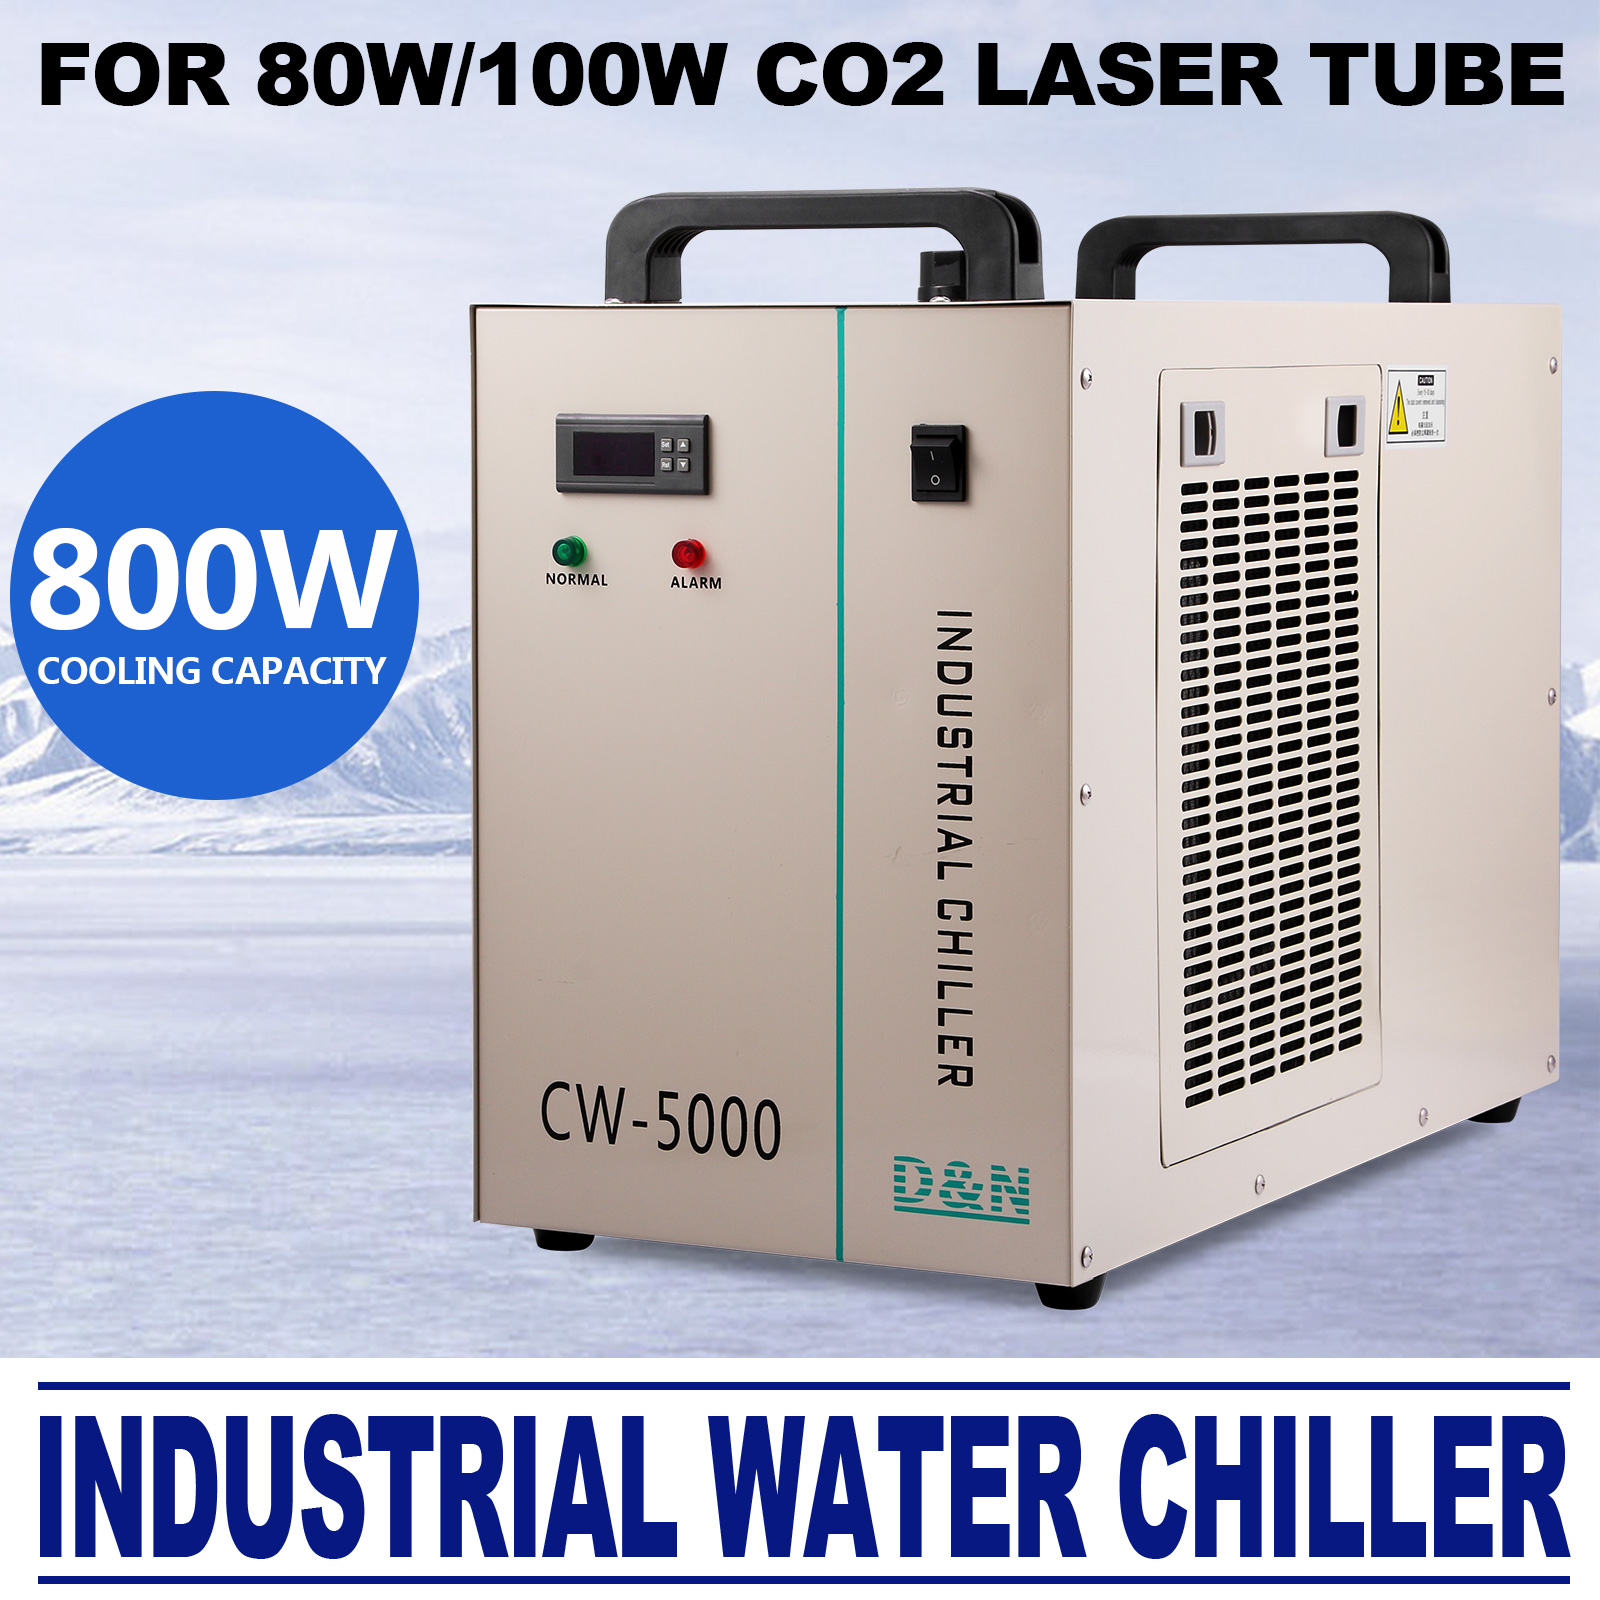 CW-5000DG INDUSTRIAL WATER CHILLER 6L TANK GLASS LASER TUBE TEMPERATURE NEWEST